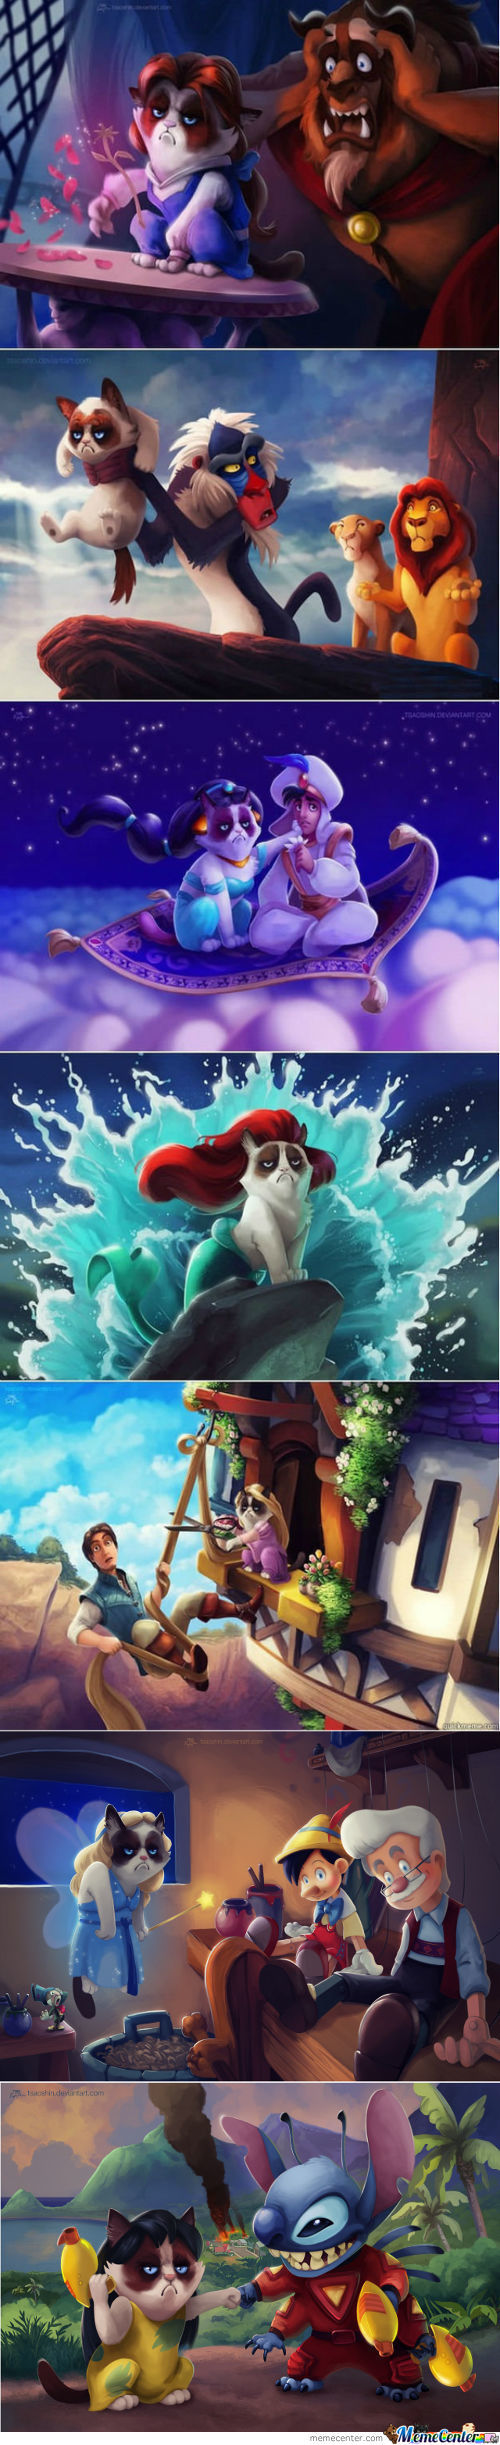 Grumpy Cat Disney Version (Credits To Tsaoshin)